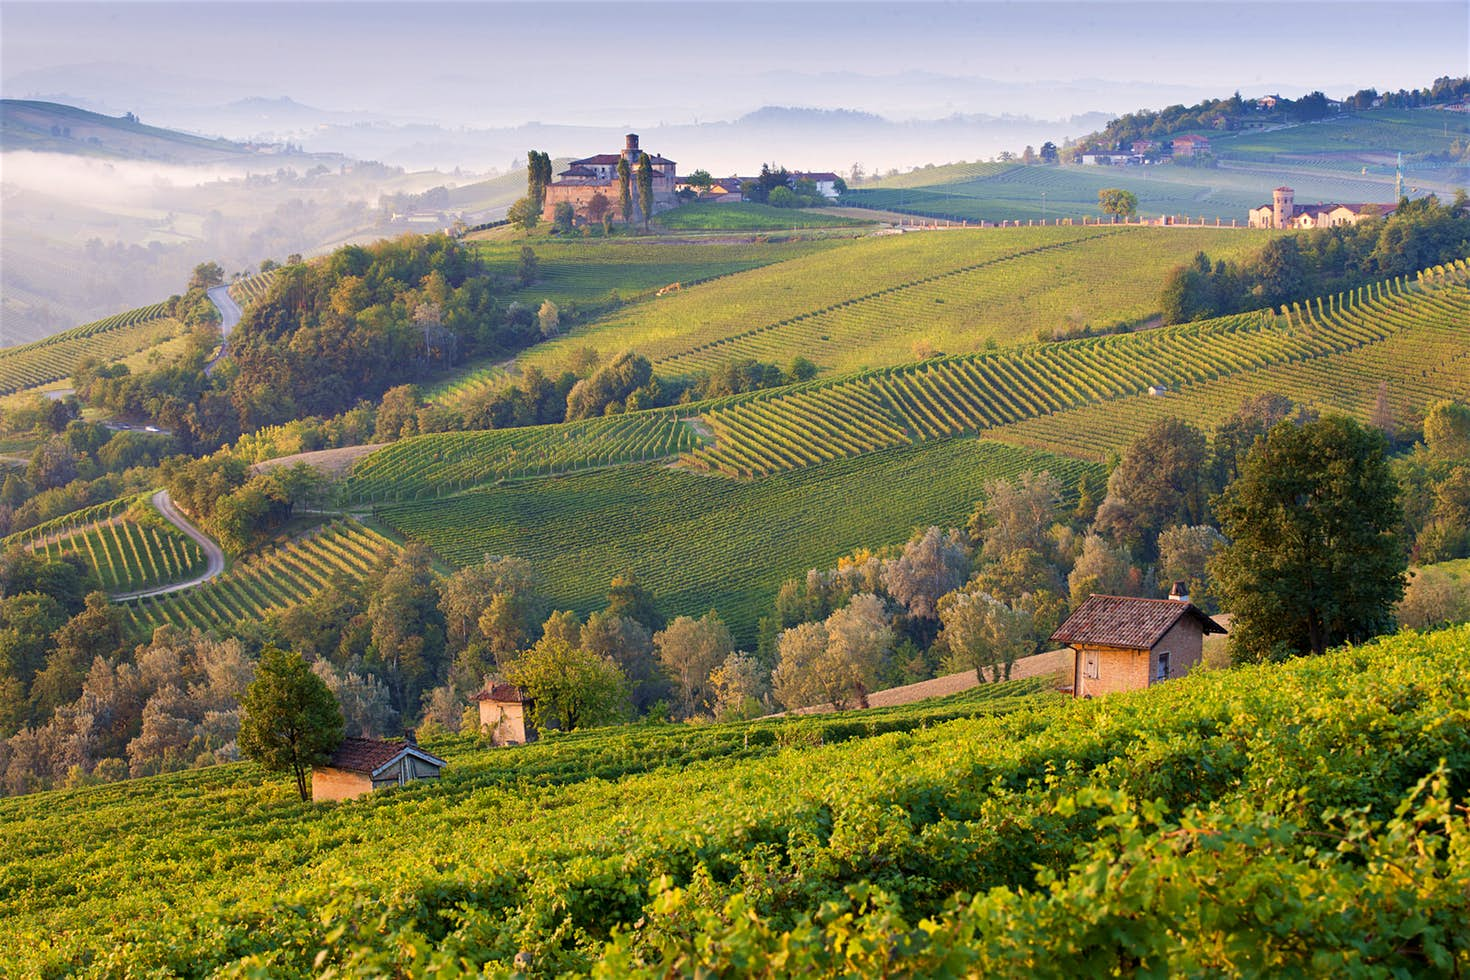 The the vineyard trails of the Langhe region, Piedmont, Italy.